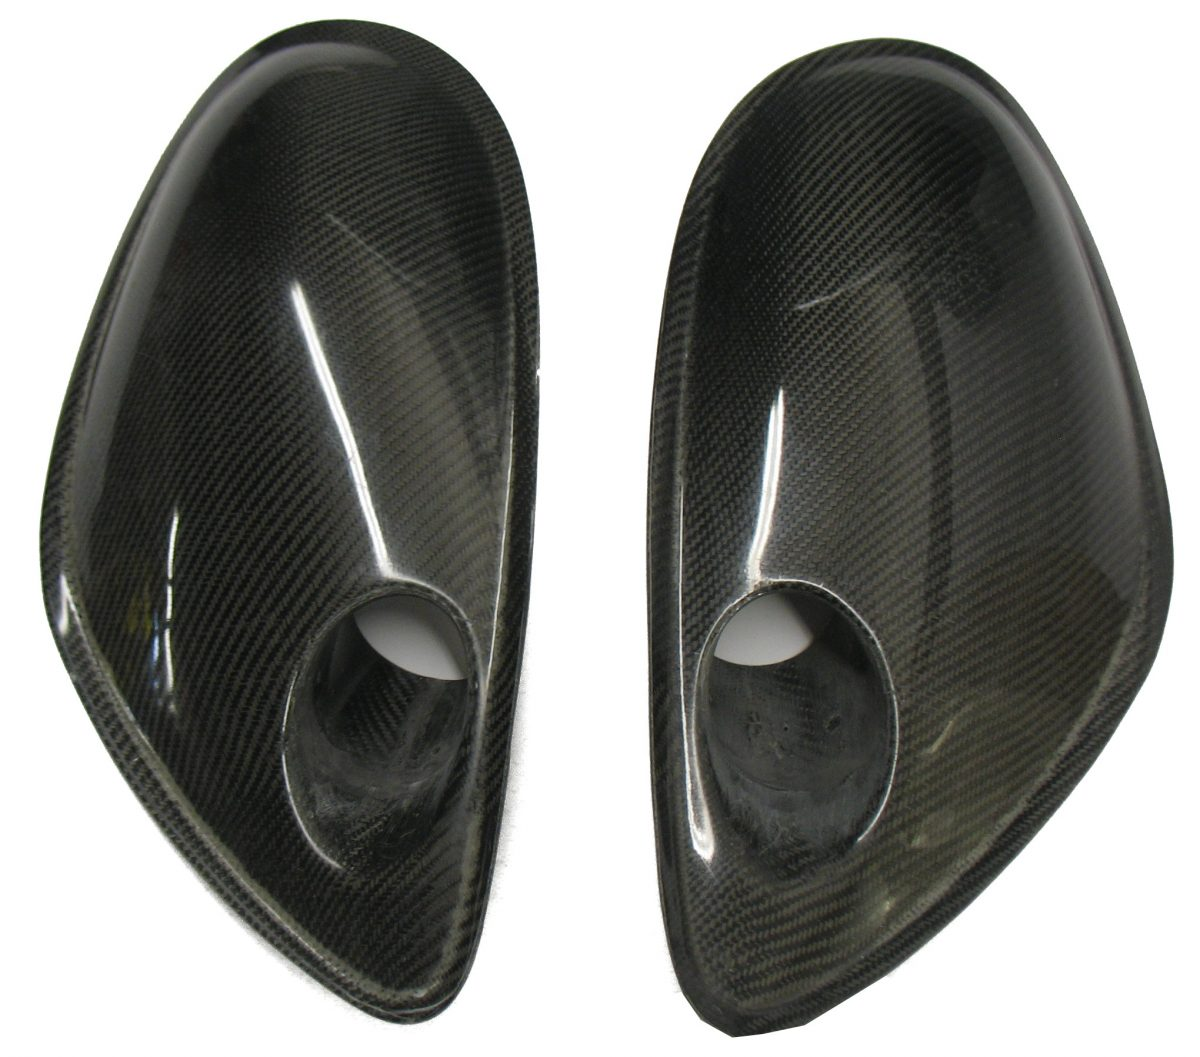 Cayman 987 Ducted Headlight Covers Part